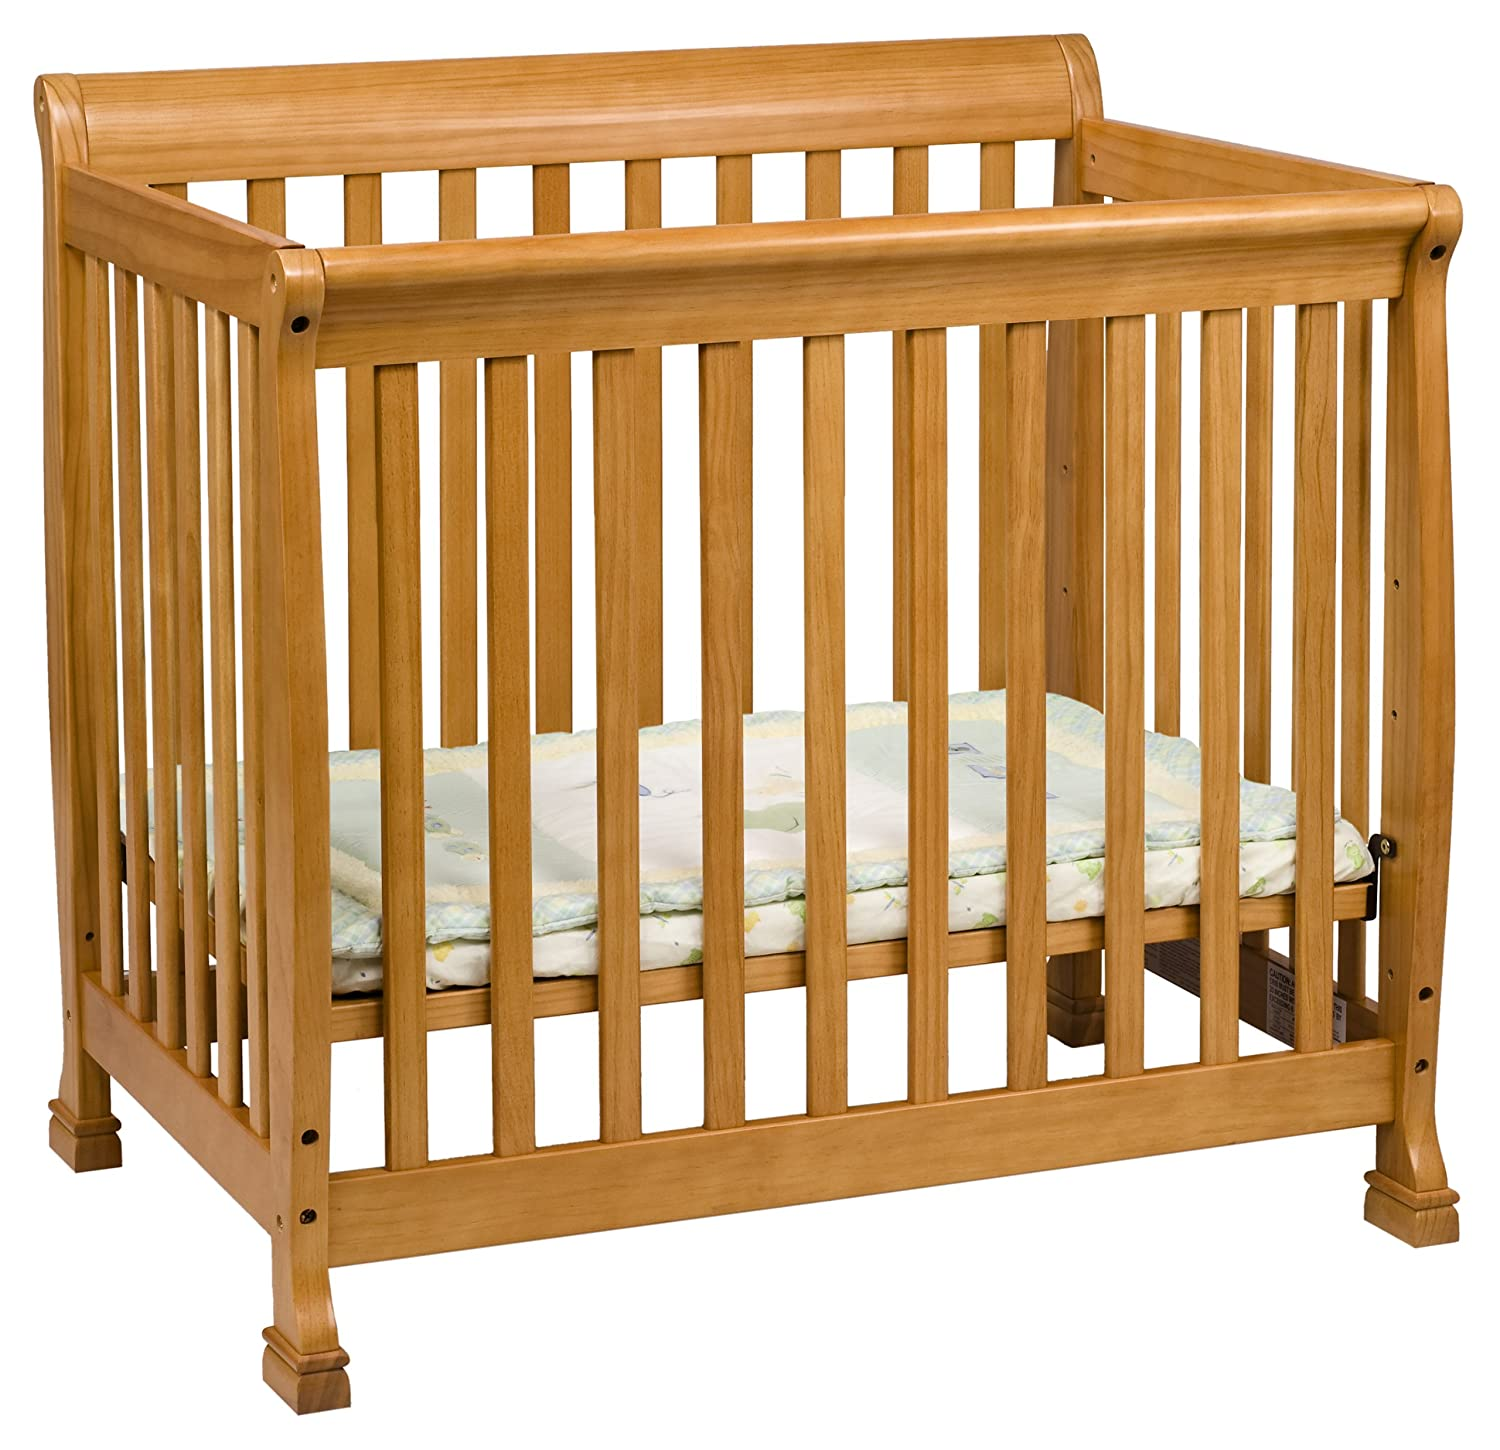 ben collection in set cribs convertible aged franklin with crib resize toddler oak providence rail